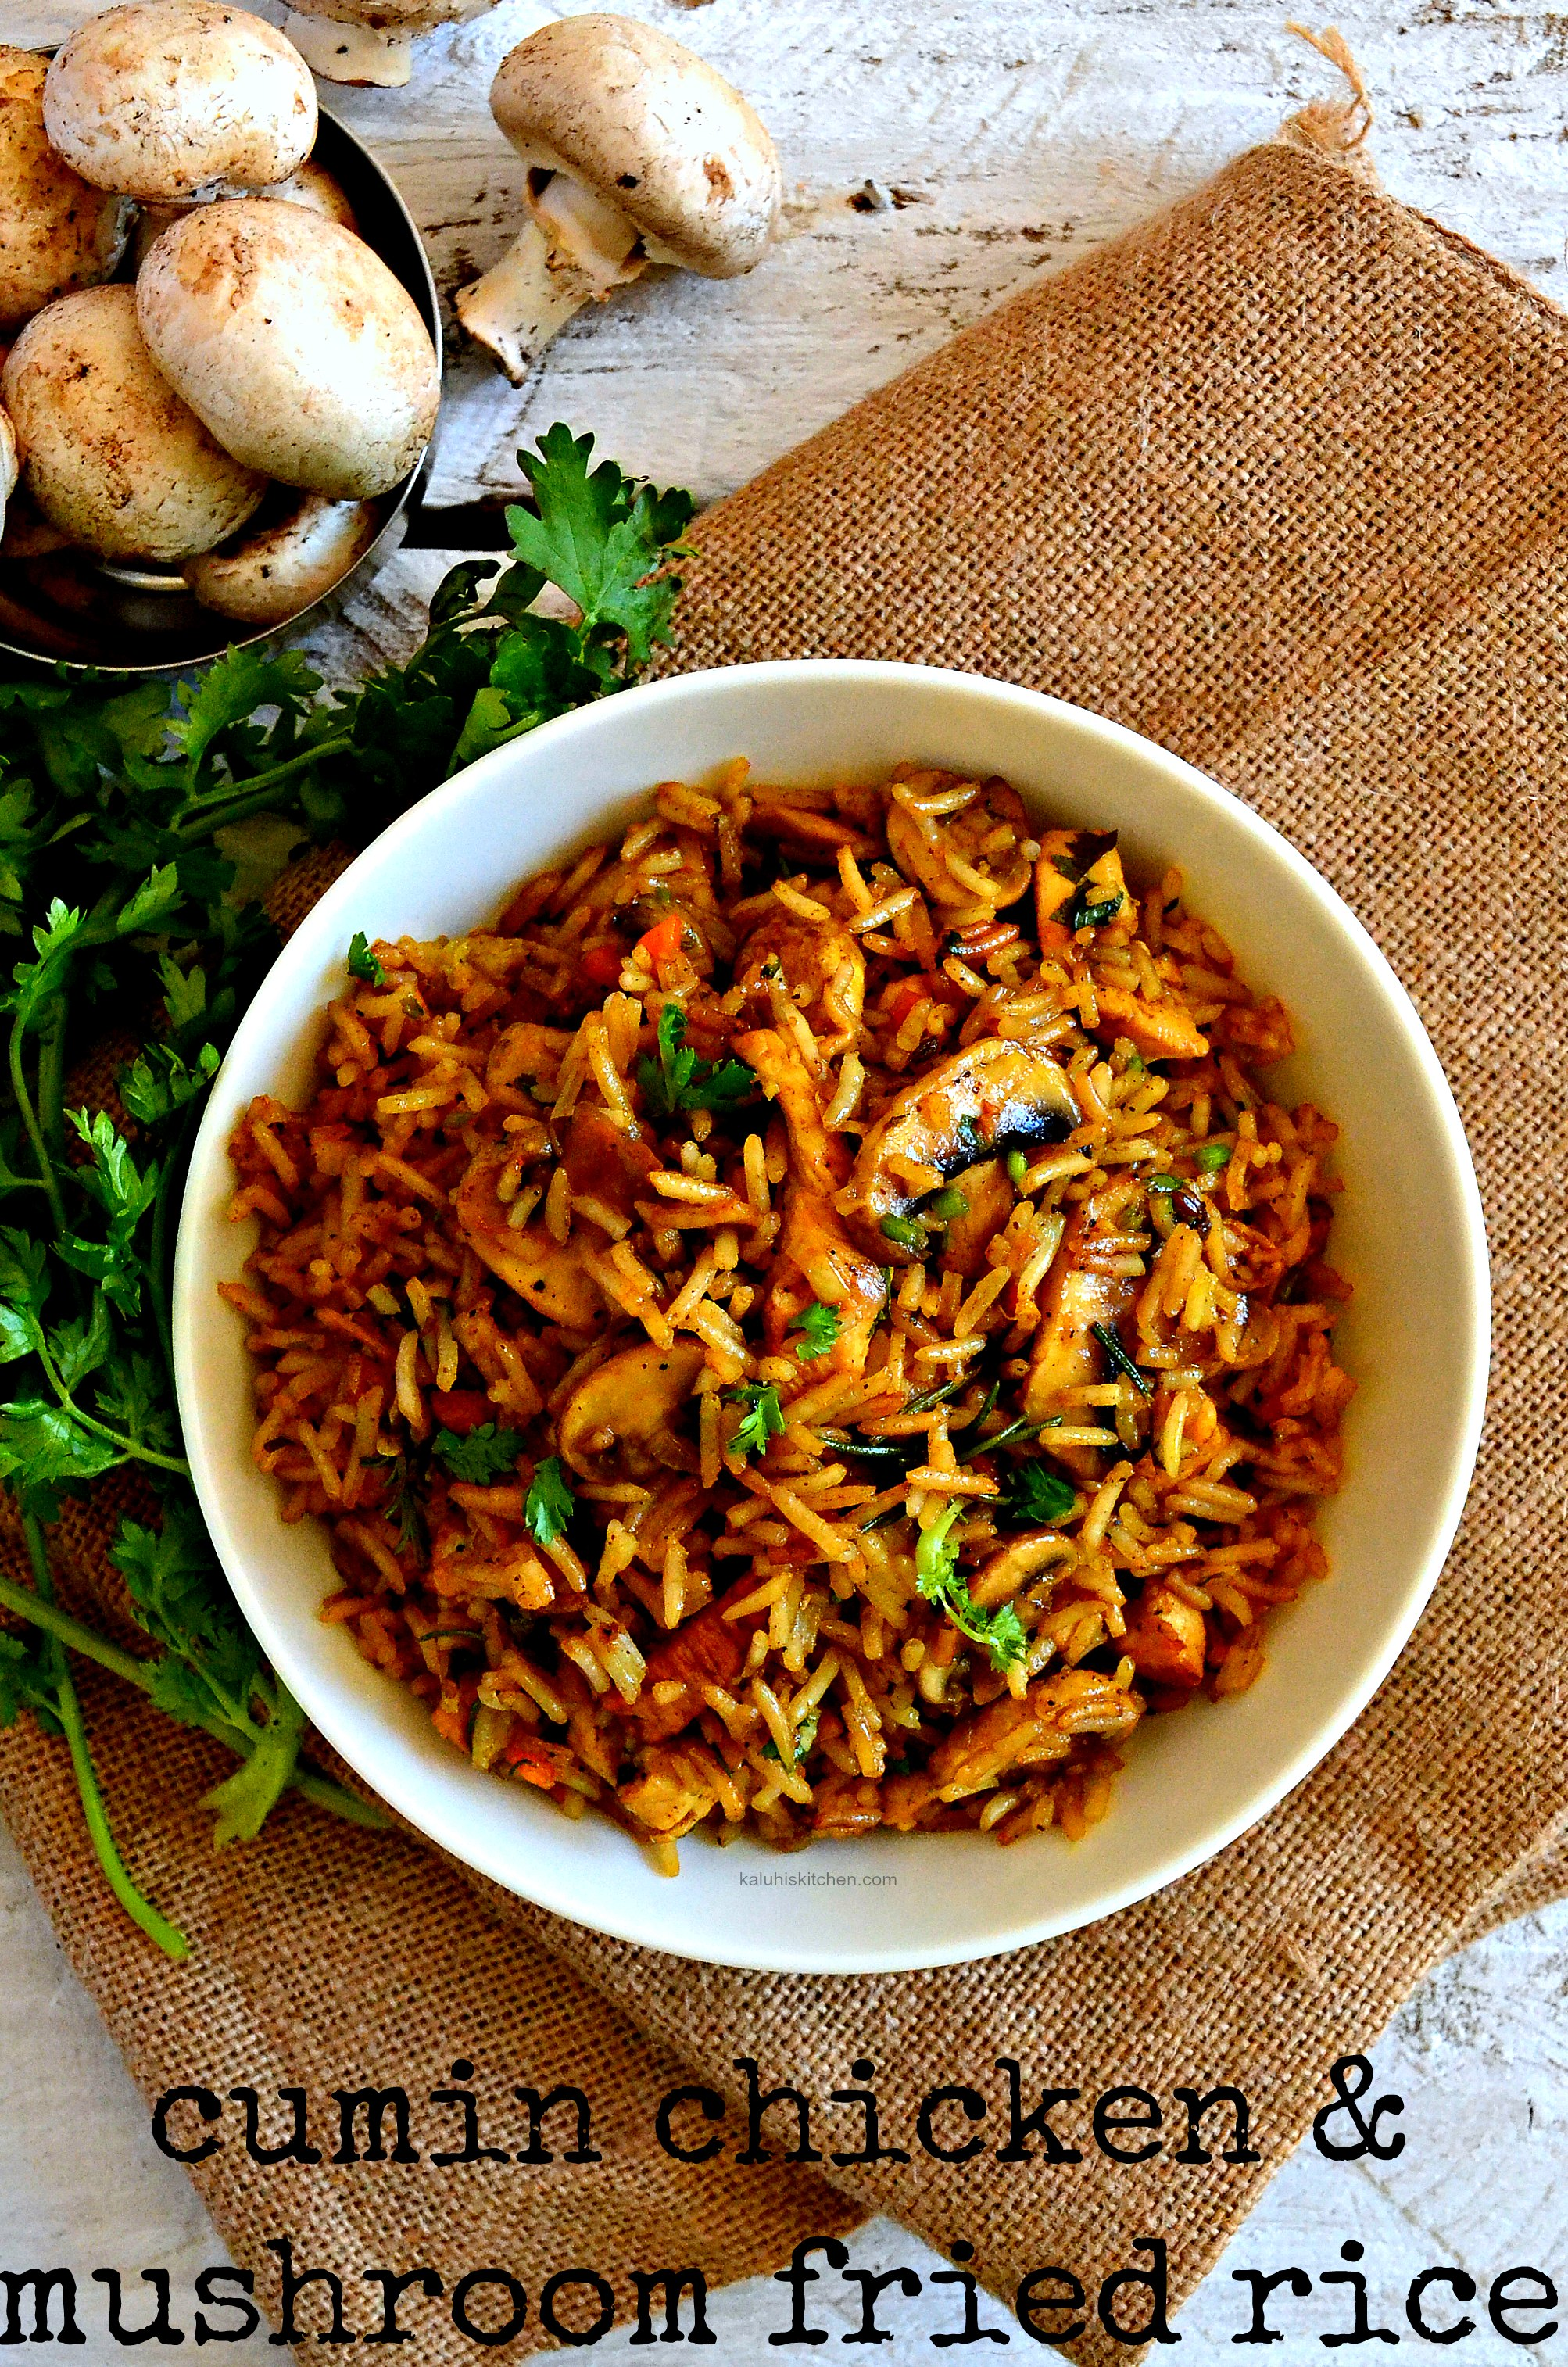 Cumin chicken and mushroom fried rice now lets get into this bomb recipe ccuart Gallery